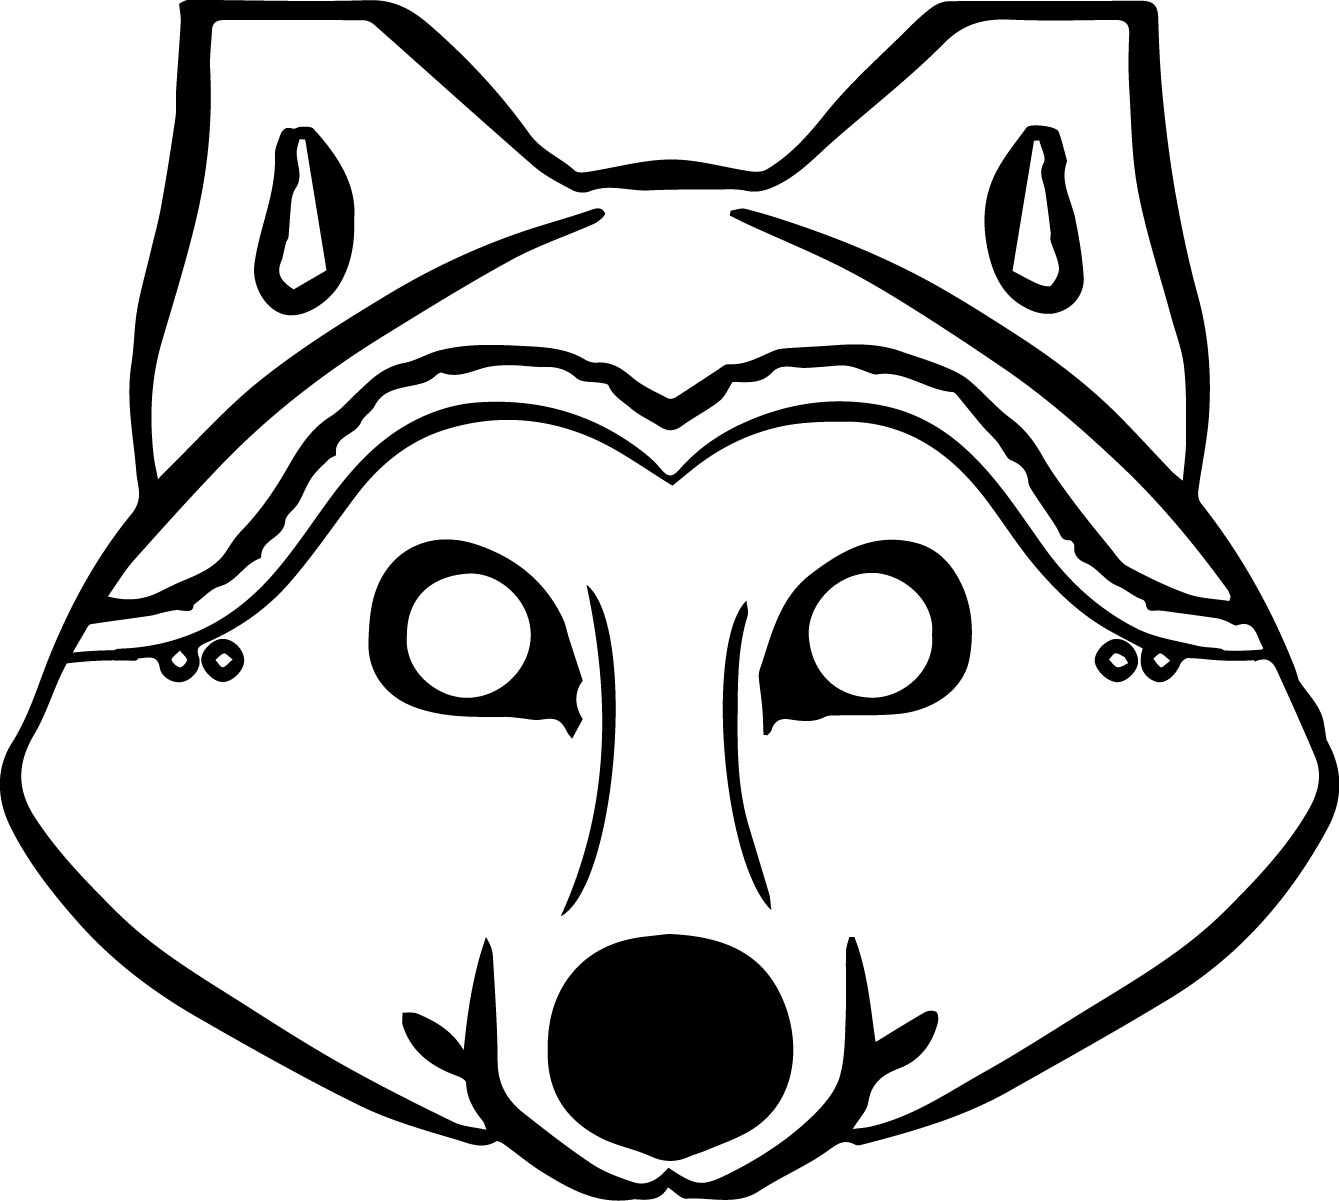 Library Of Wolf Face Mask Clipart Black And White Stock